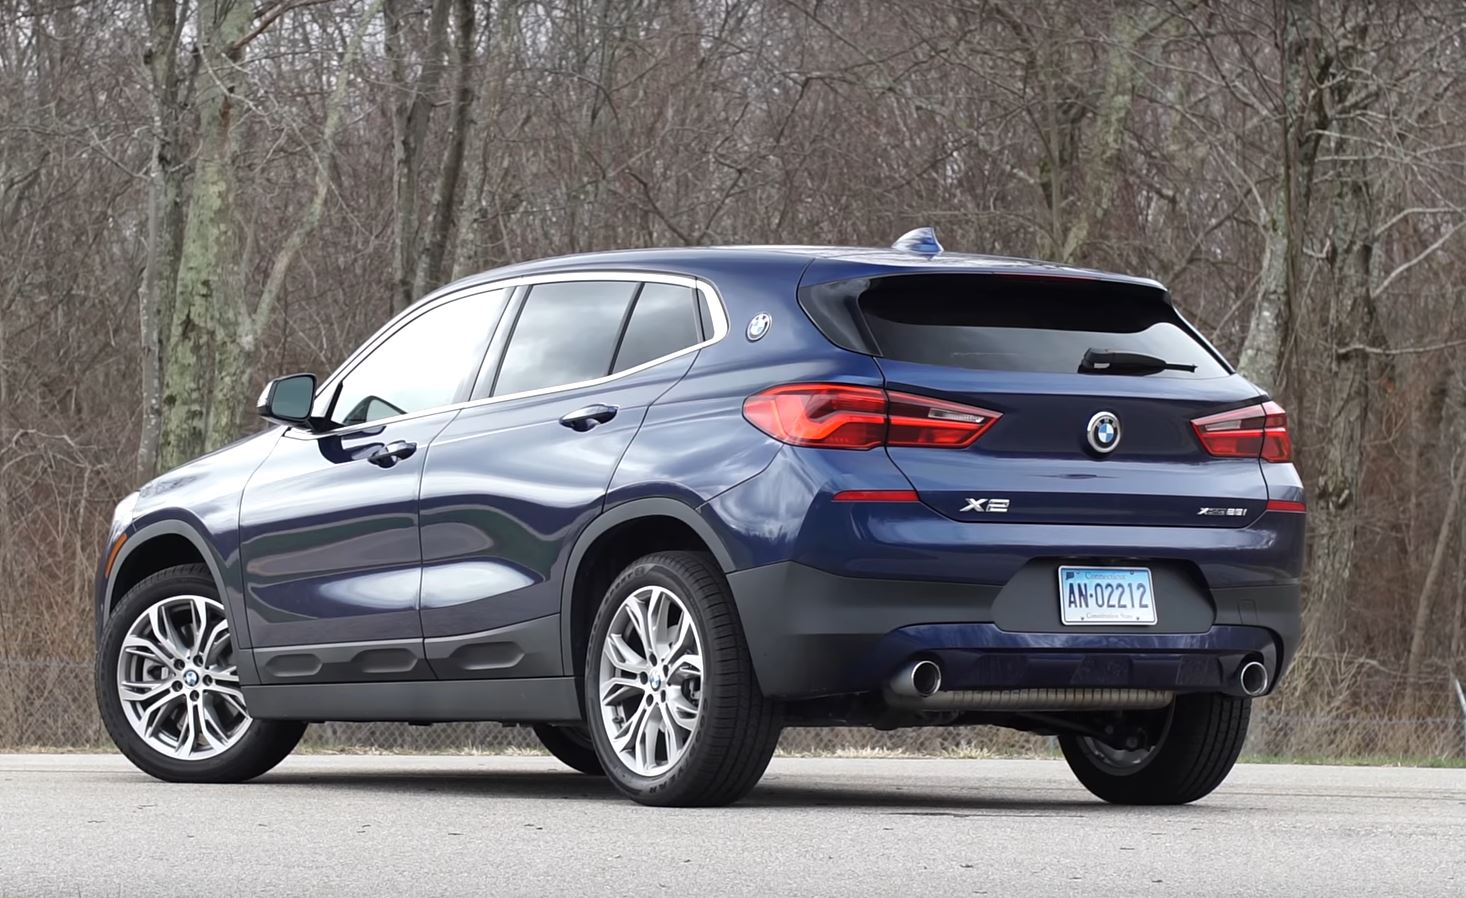 bmw x2 drives like a sporty hatchback consumer reports says autoevolution. Black Bedroom Furniture Sets. Home Design Ideas